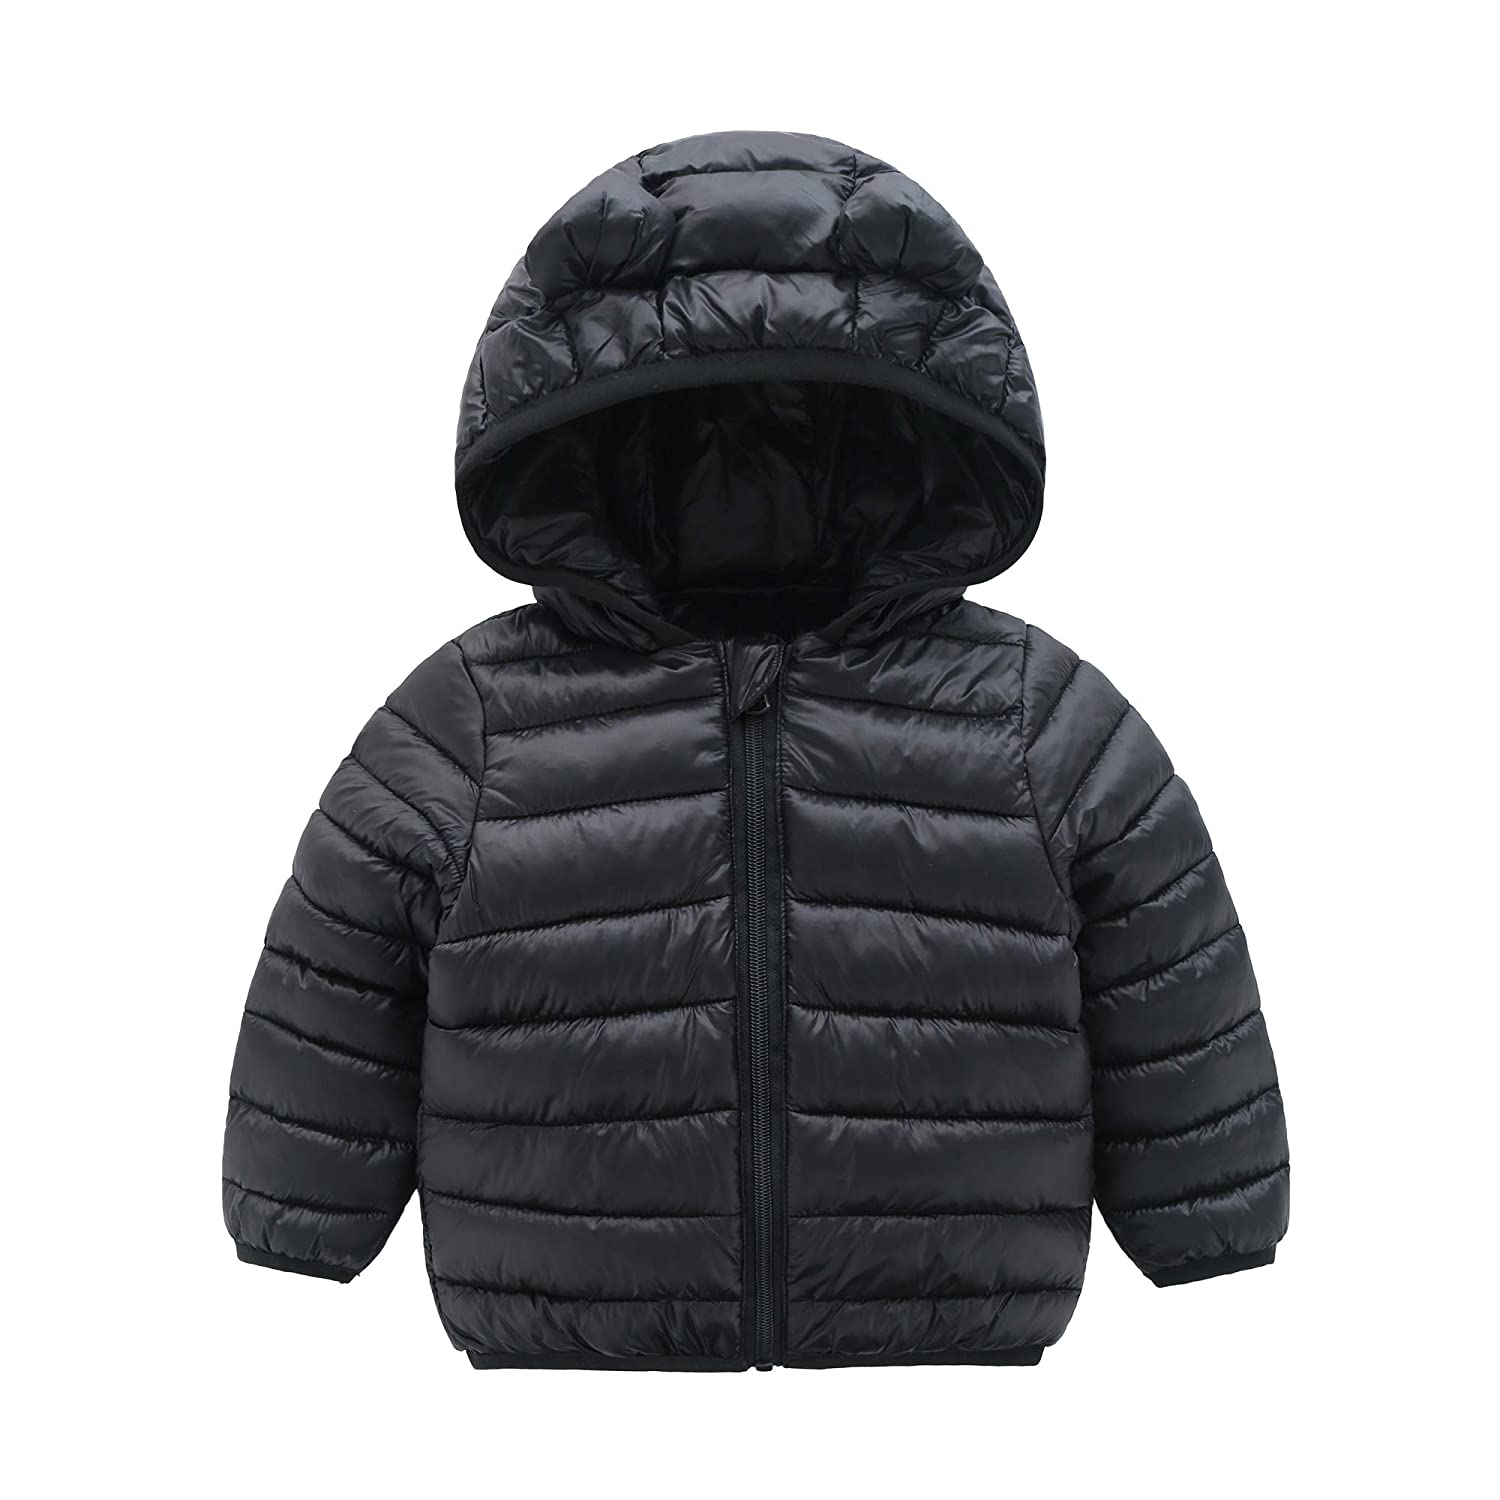 1dae947da CECORC Winter Coats for Kids with Hoods (Padded) Light Puffer Jacket for  Baby Boys Girls, Infants, Toddlers